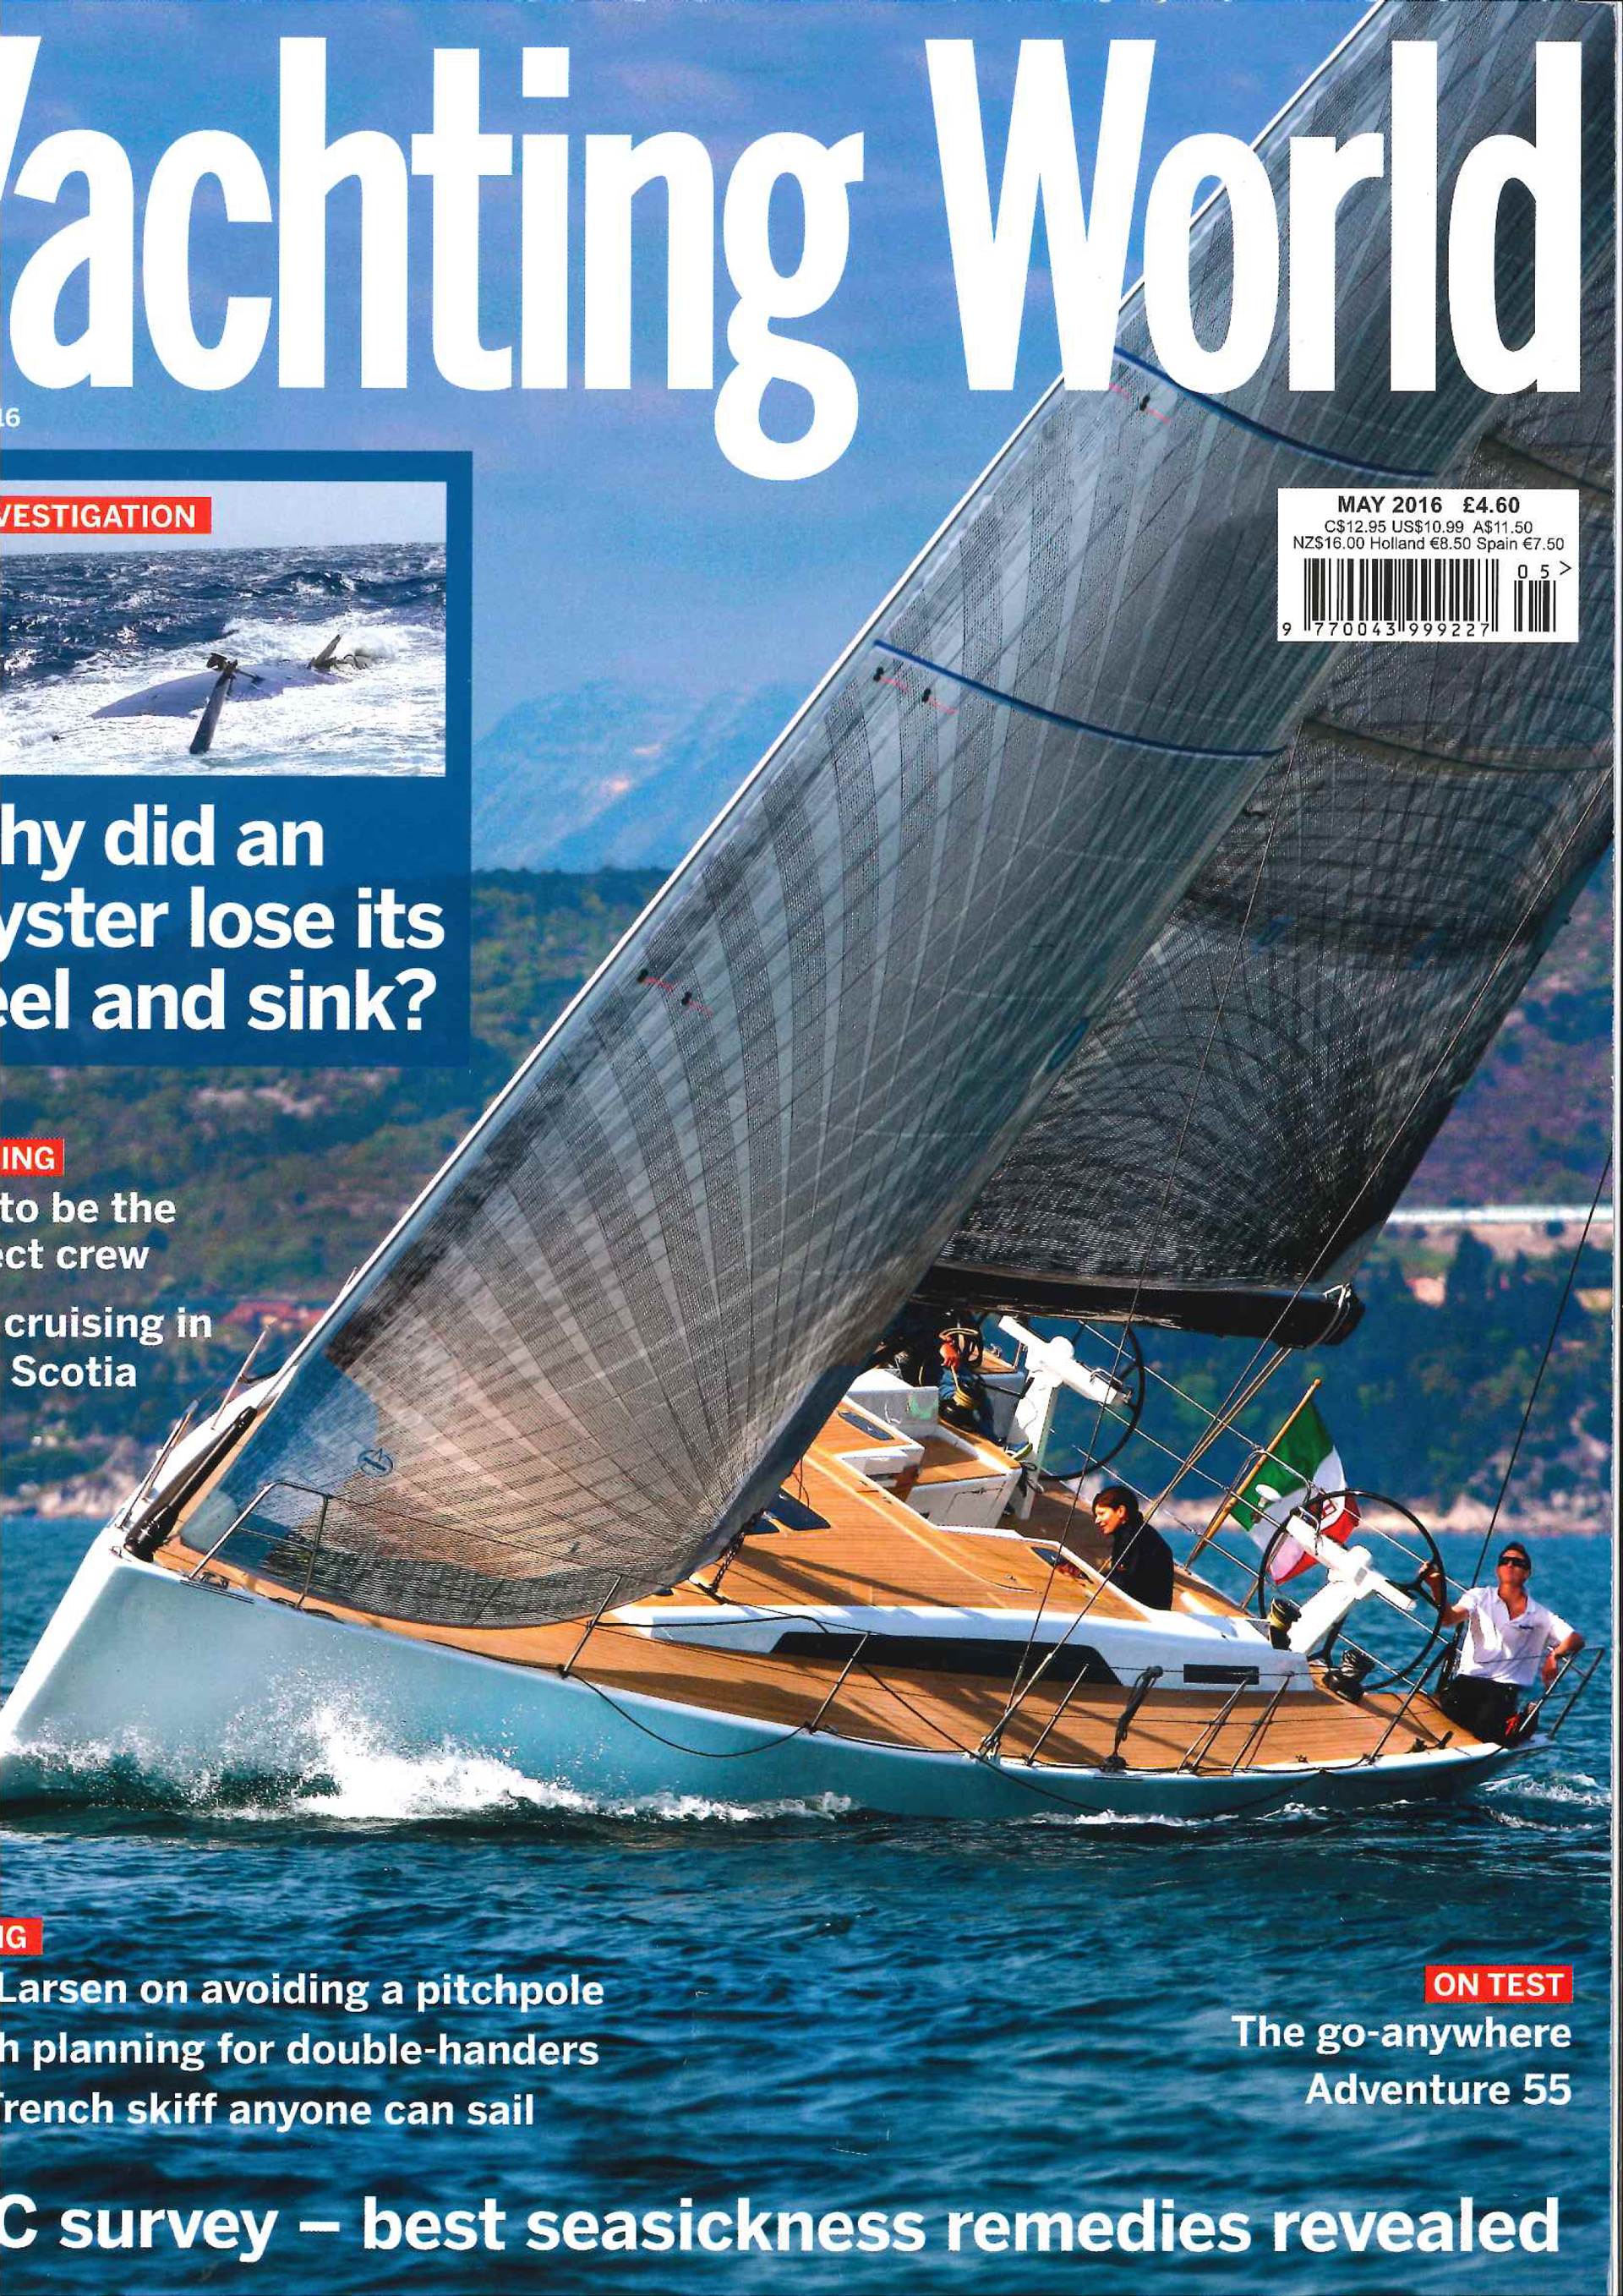 ePoH-in-YachtingWorld-May2016-MD-1